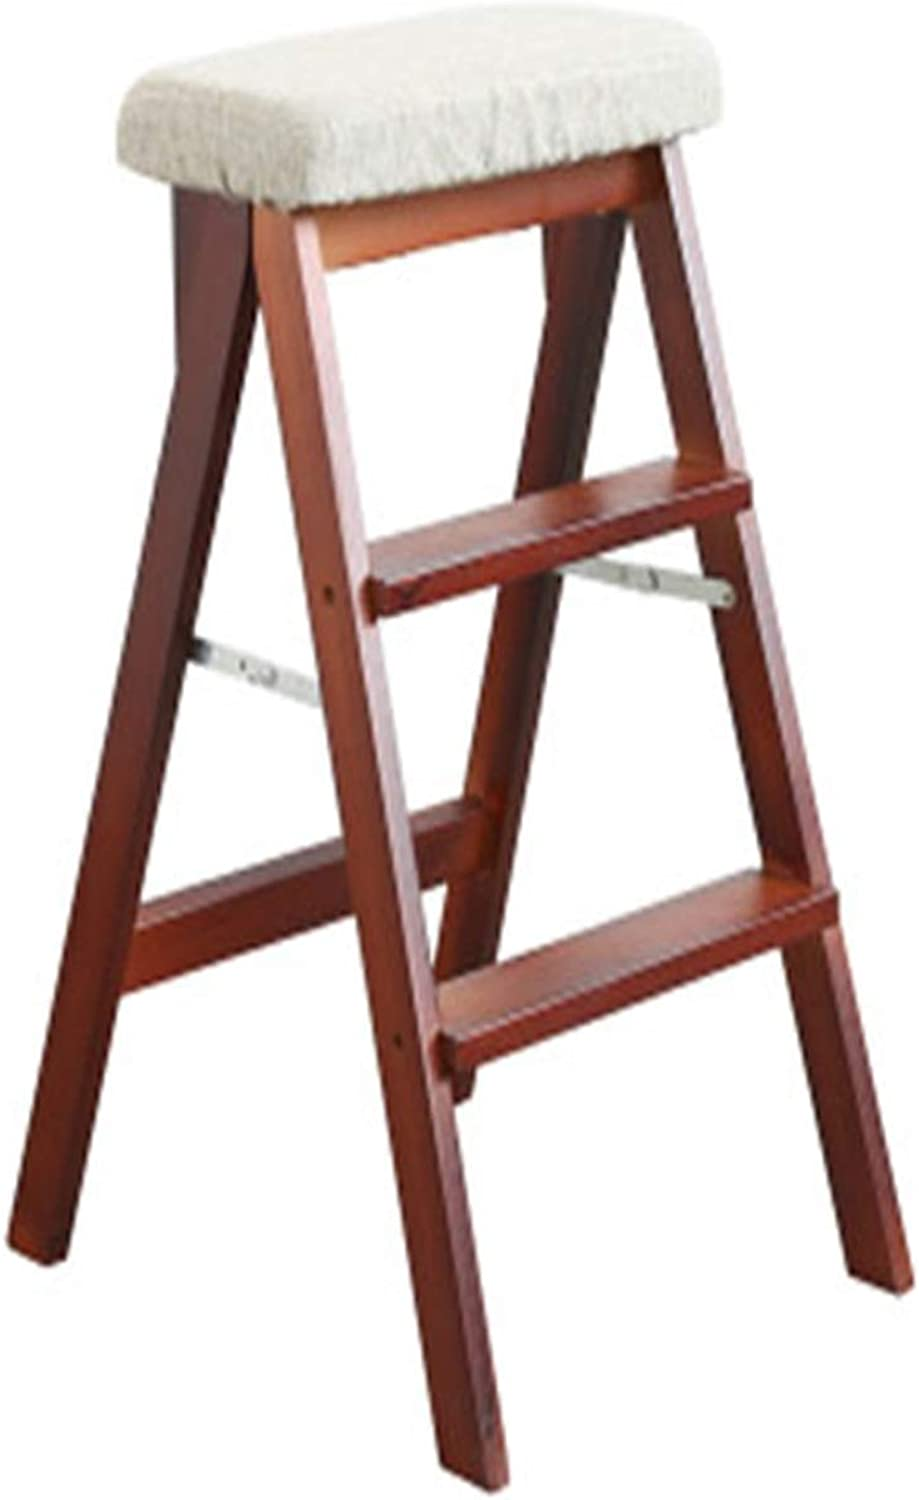 Solid Wood Folding Bench Bar Stool Wooden Ladder Home Folding Chair Multi-Function Fabric High Stool